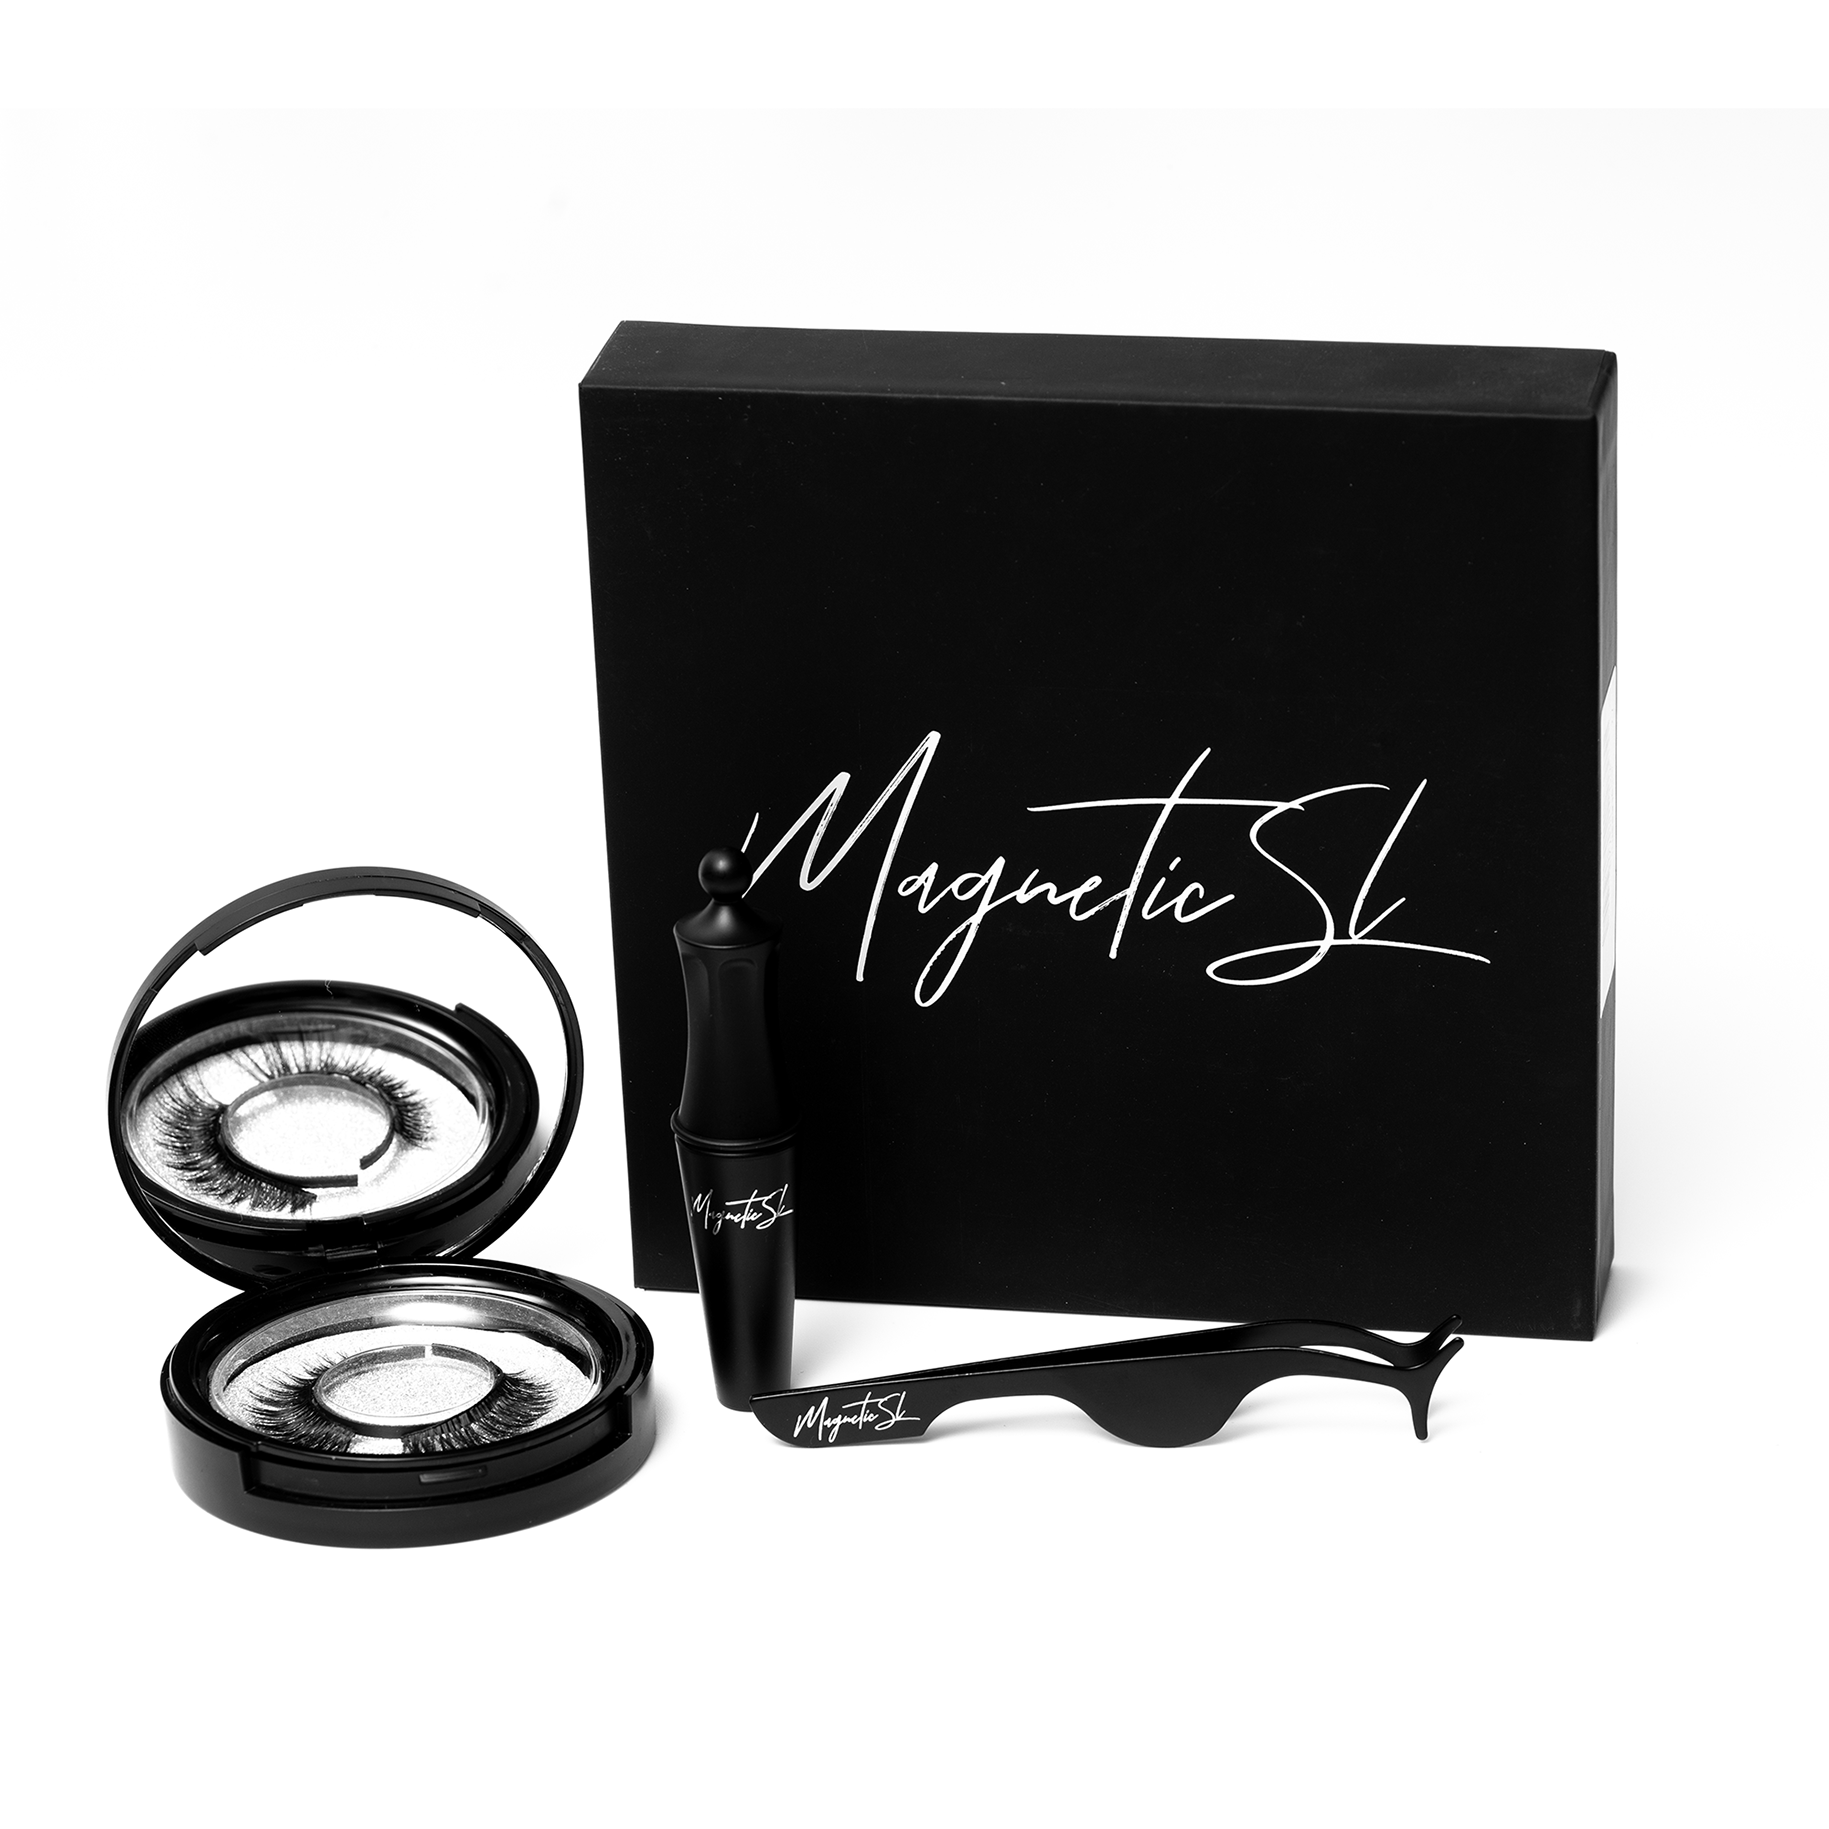 Magnetic SL 200001130 Natural Effect Magnetic SL - Eyeliner Kit